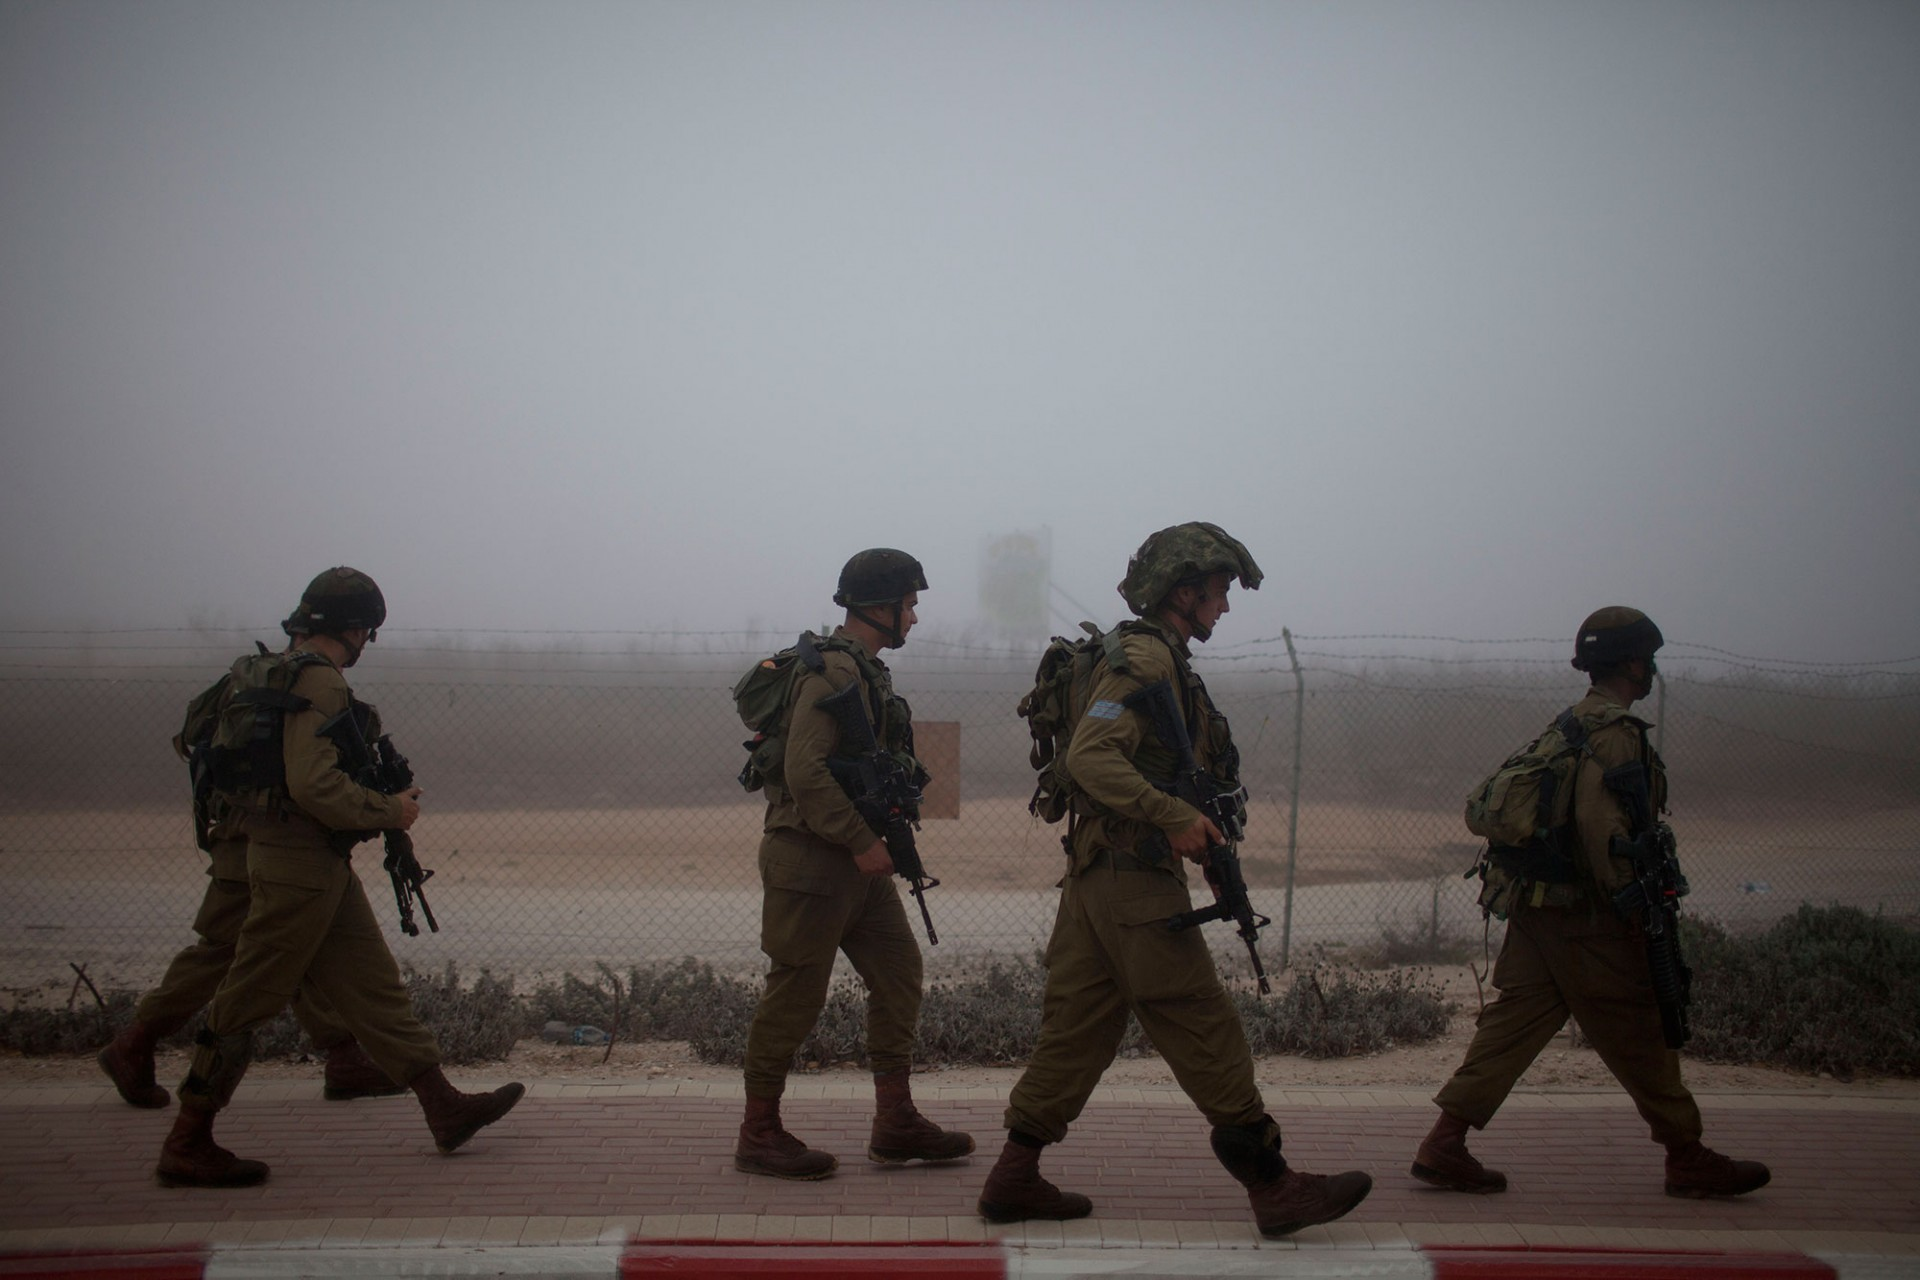 Israeli soldiers patrol next to a Kibutz on July 24, 2014 on Israel's border with the Gaza Strip.